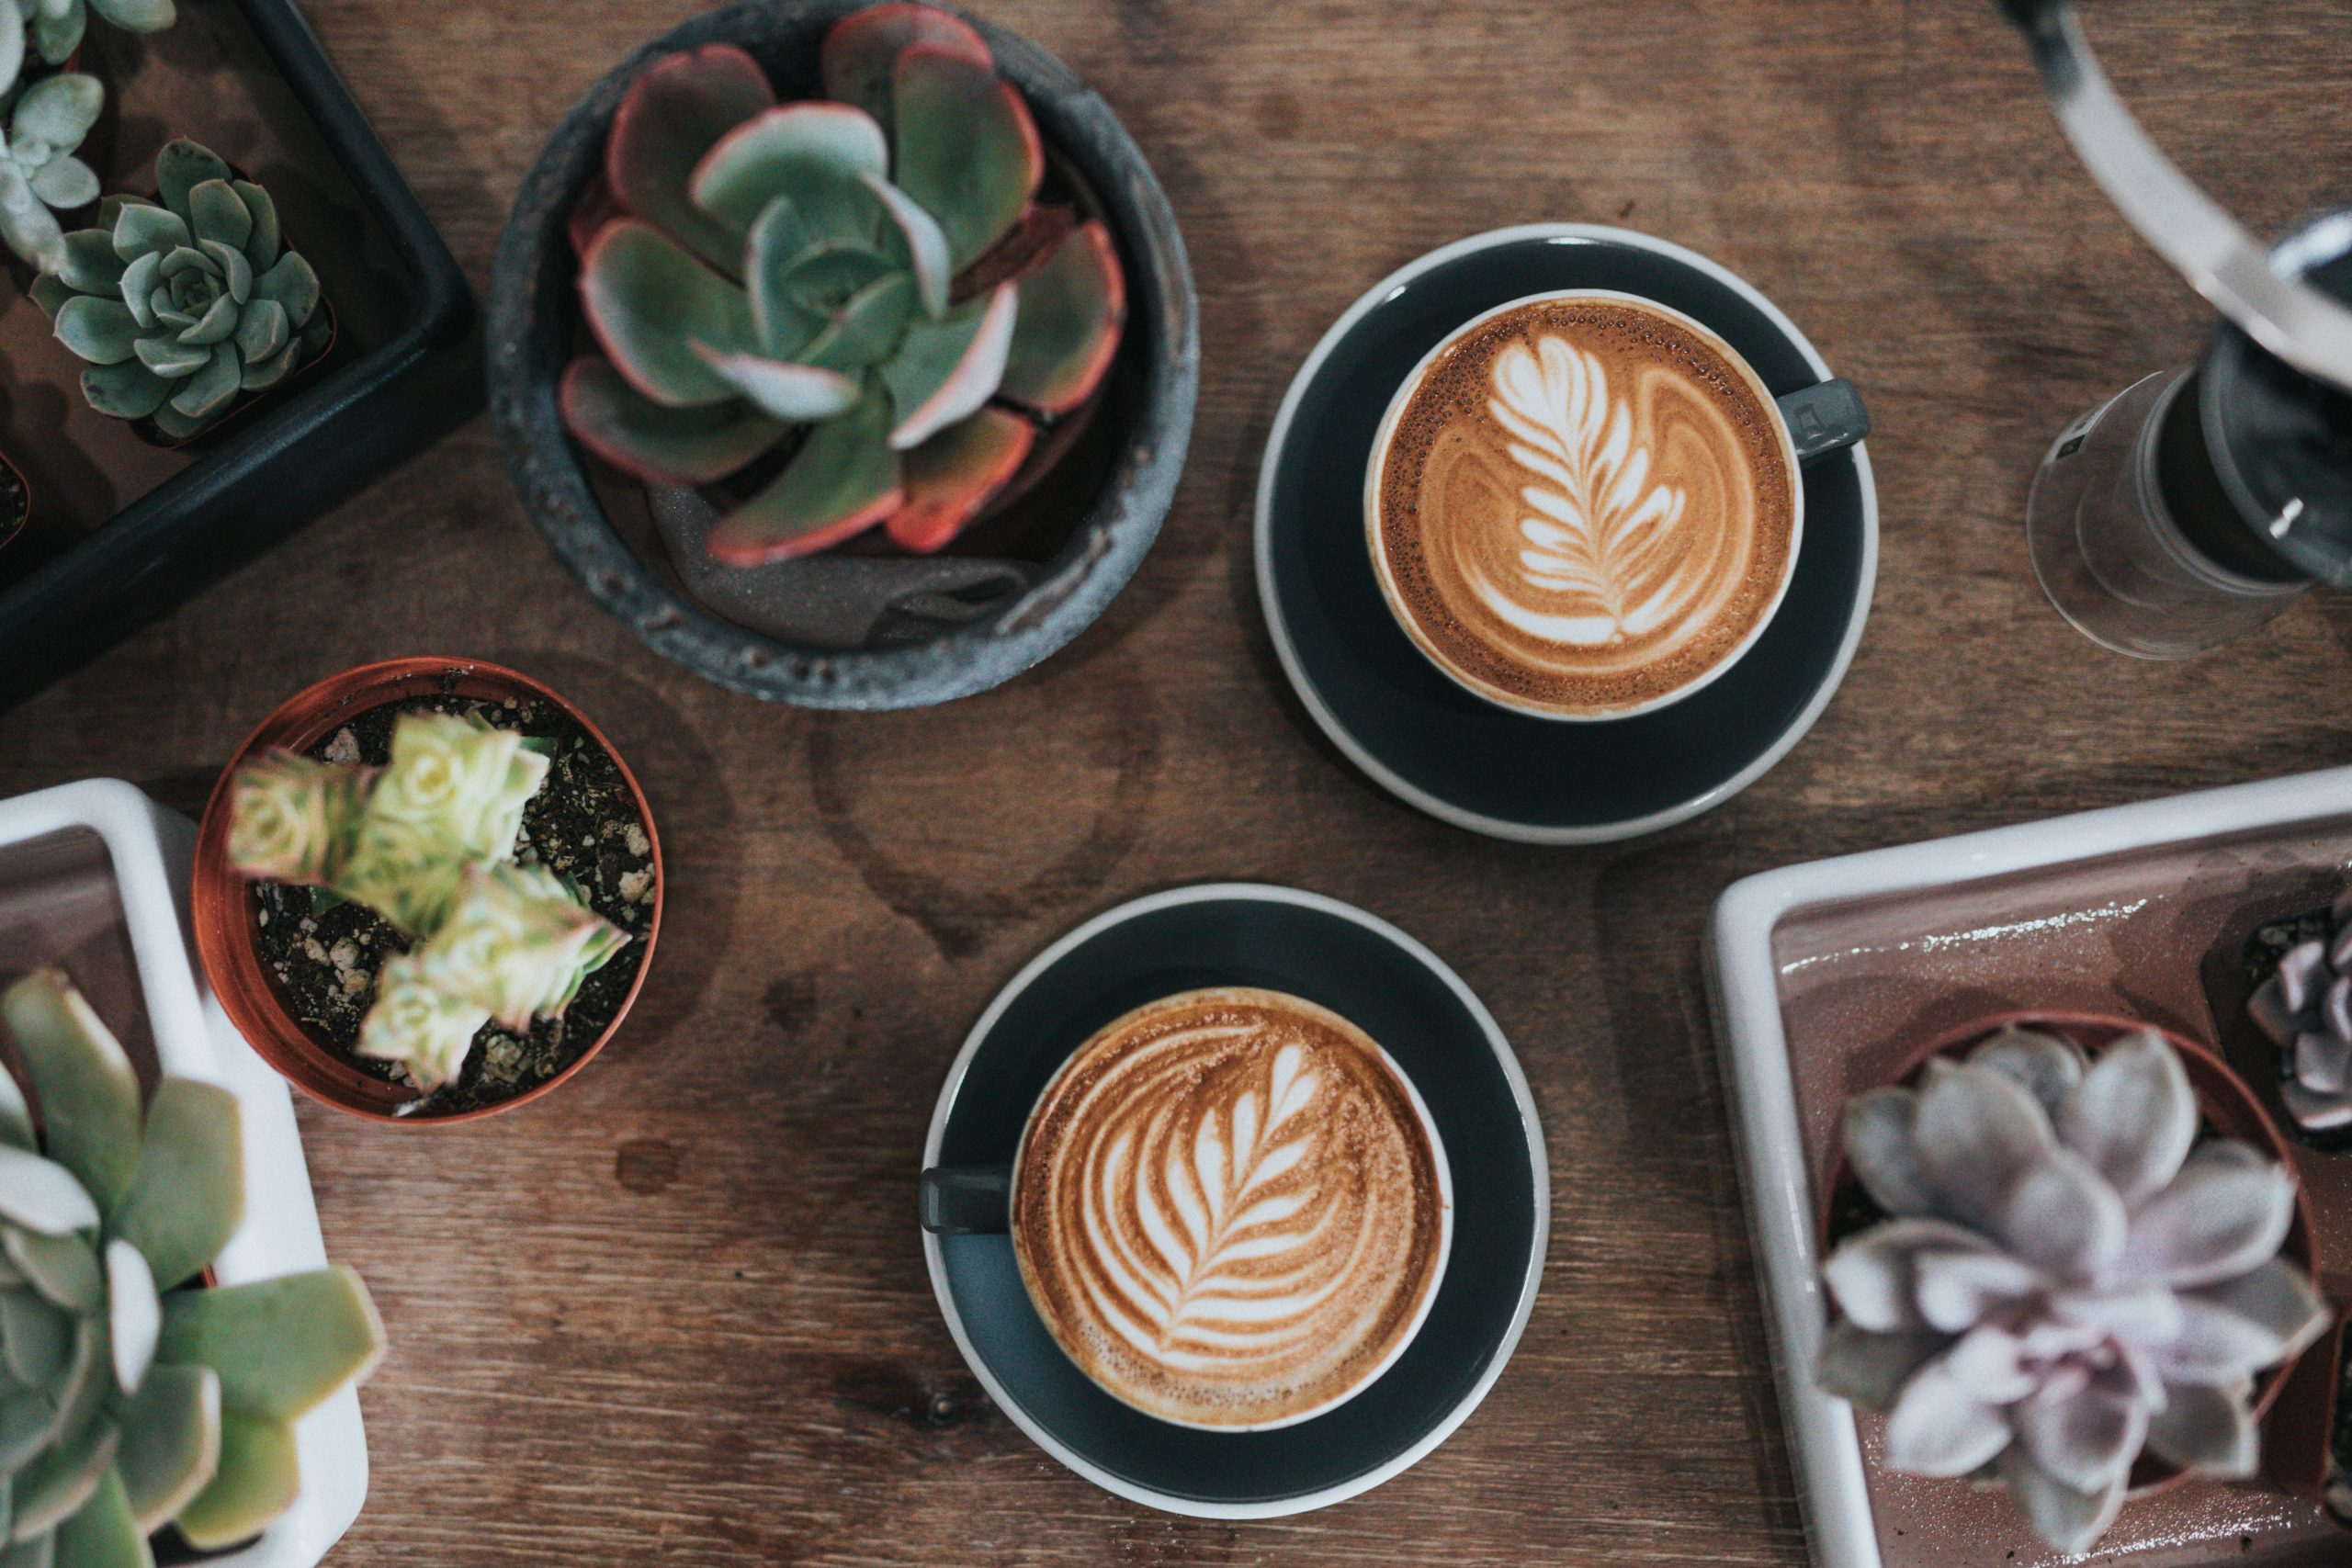 two cups of latte placed side by side on a wooden table